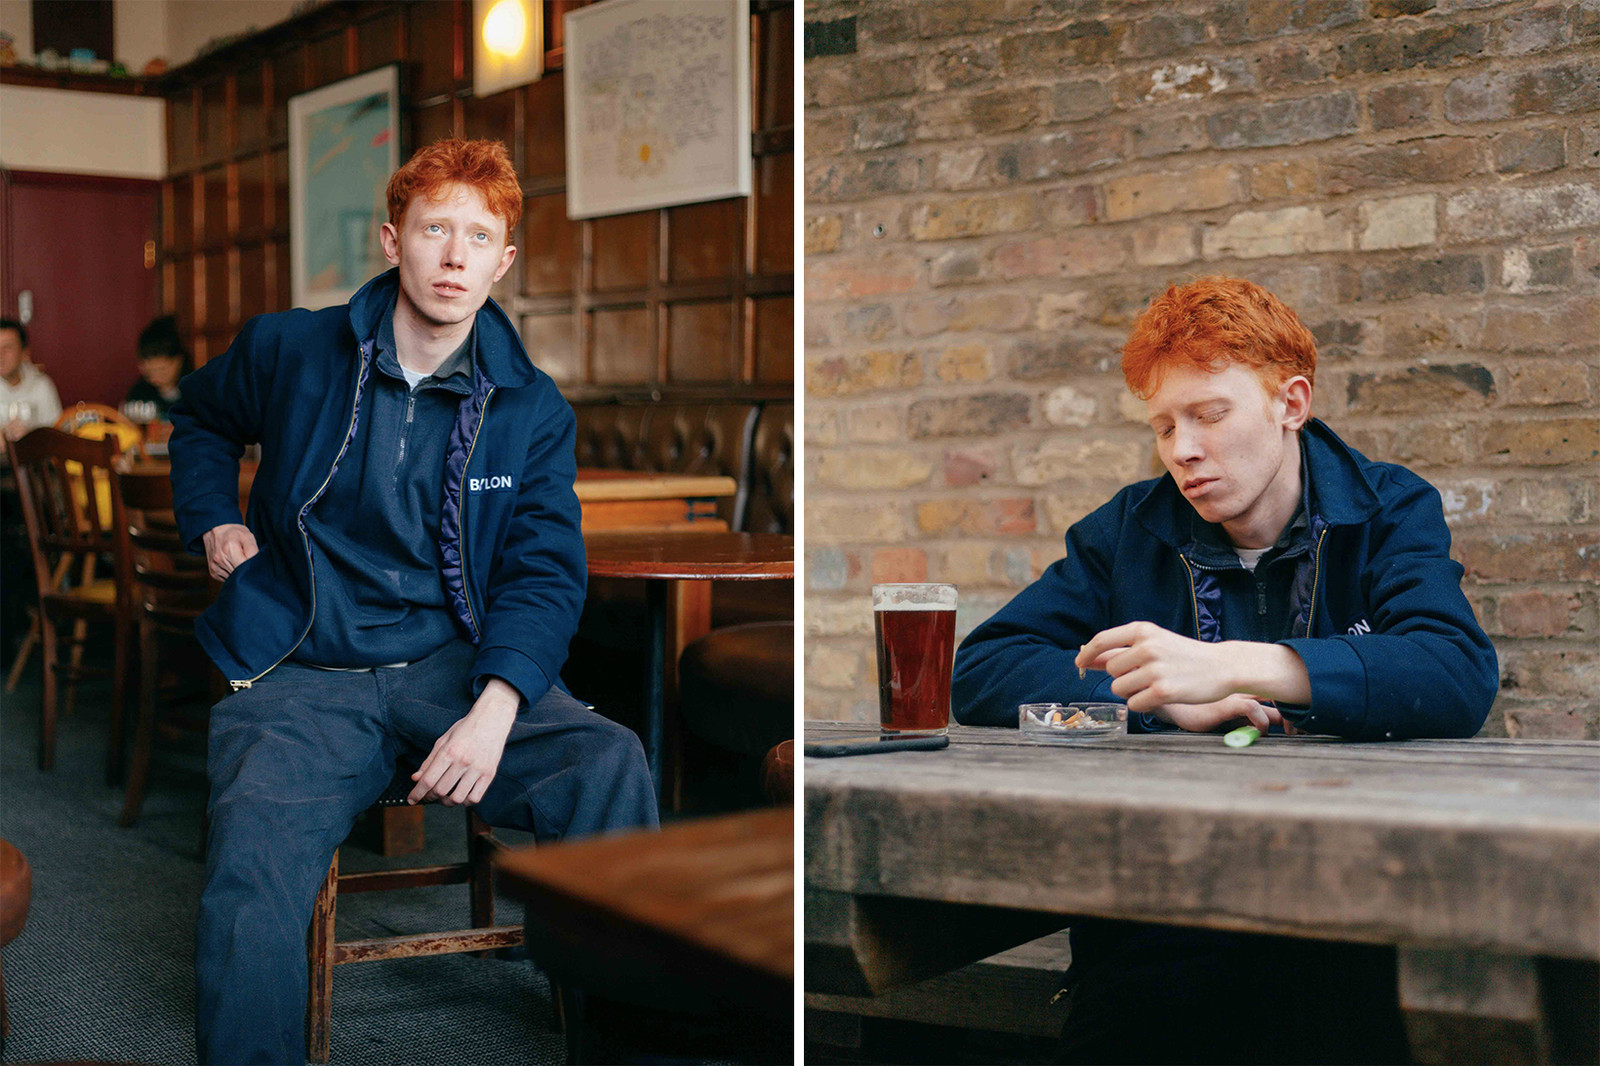 King Krule Archy Marshall The Ooz XL Recordings Interview Frank Ocean Earl Sweatshirt Kanye West Interview